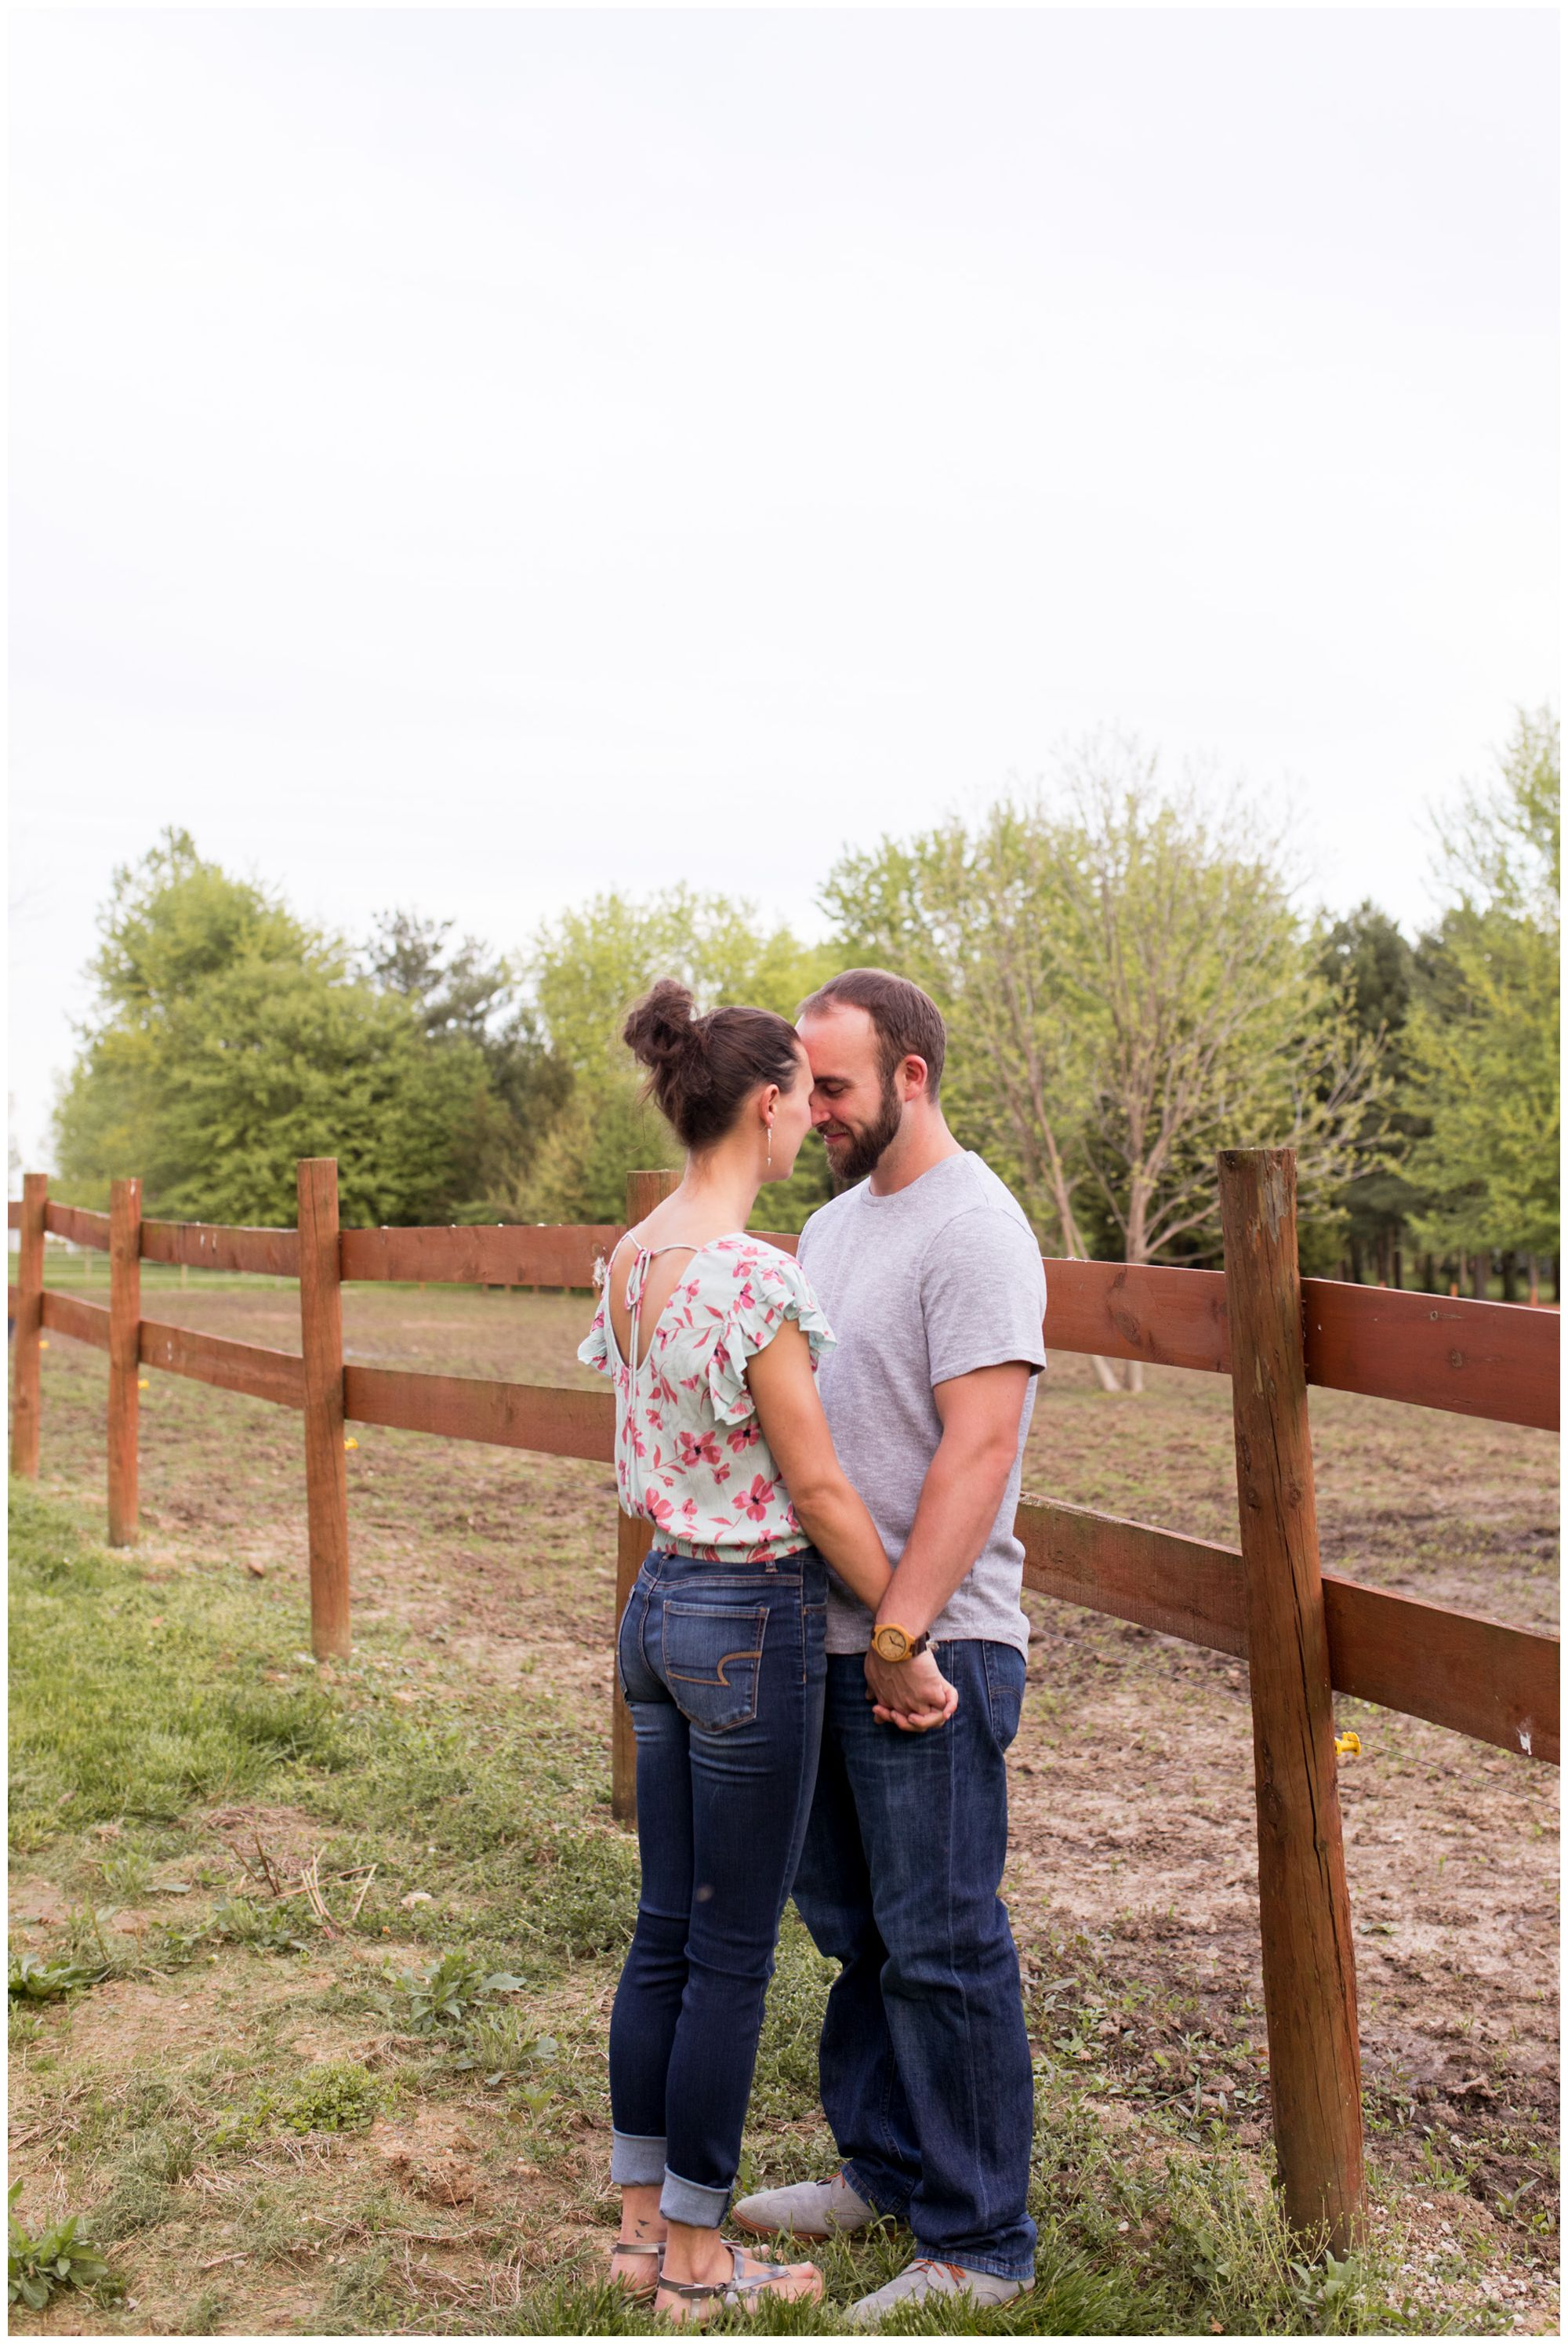 bride and groom hold hands near horse pasture fence in Indianapolis engagement session